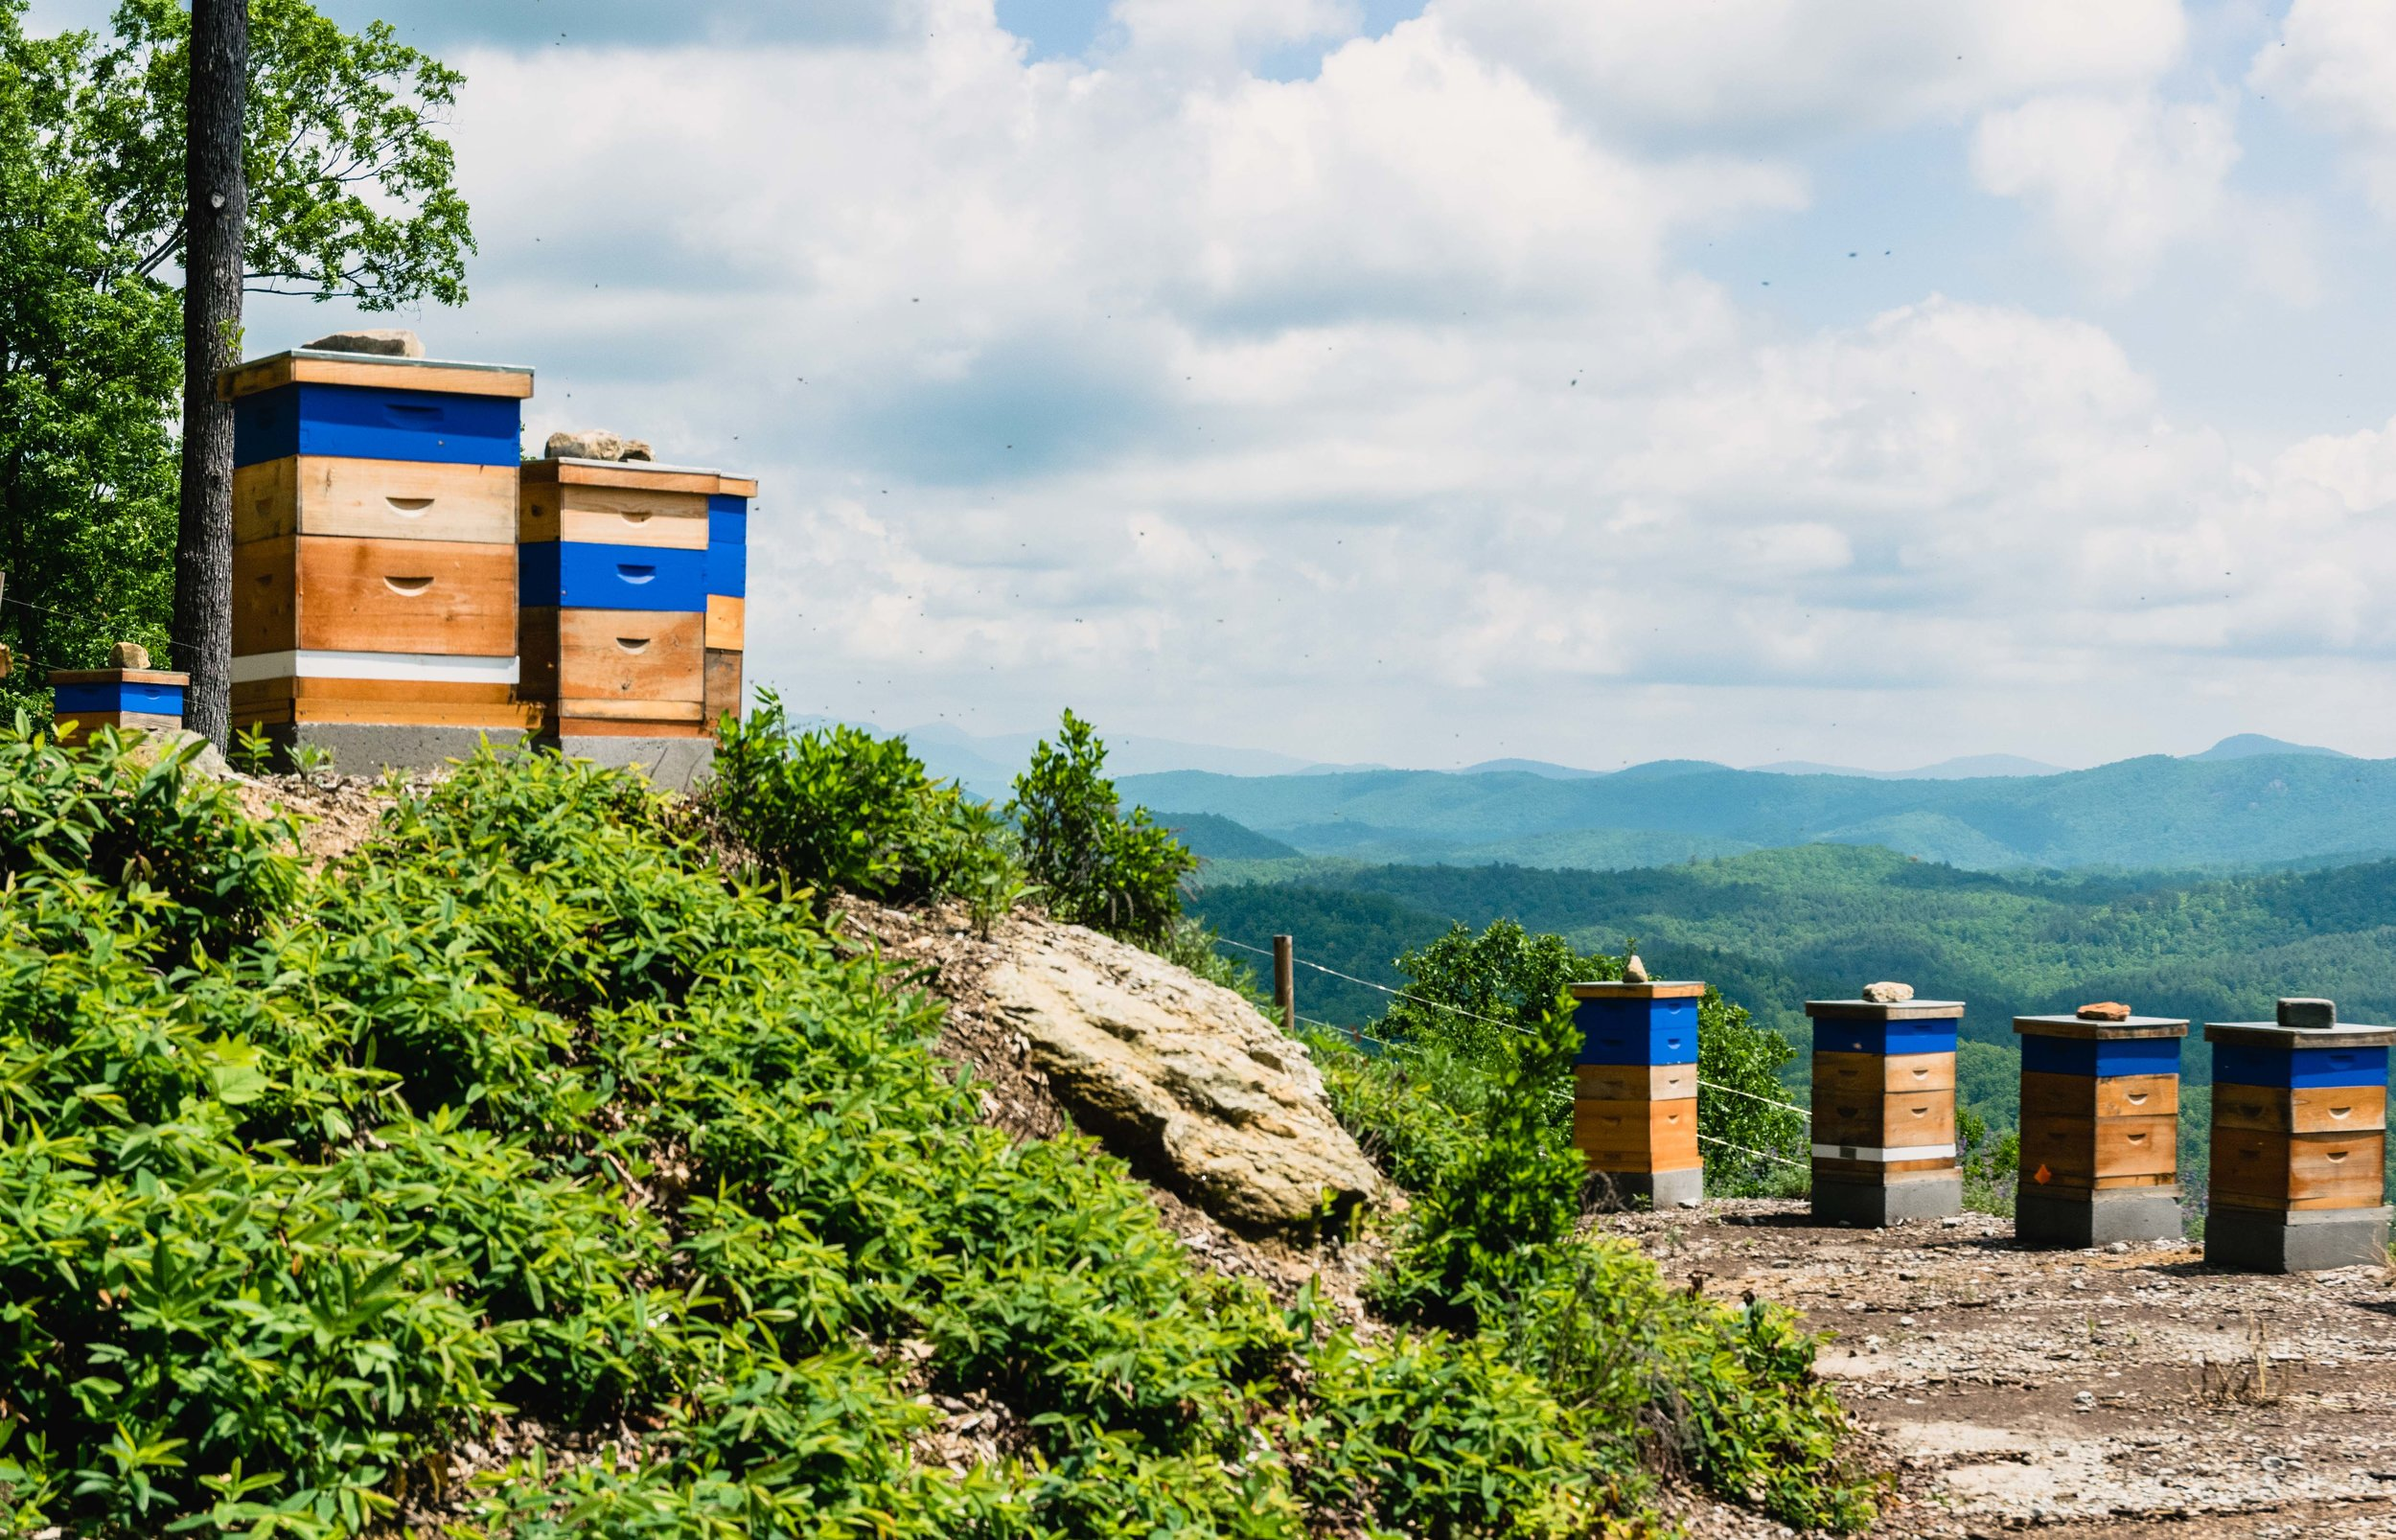 Take a close look to see bees flying all through the air around the hives